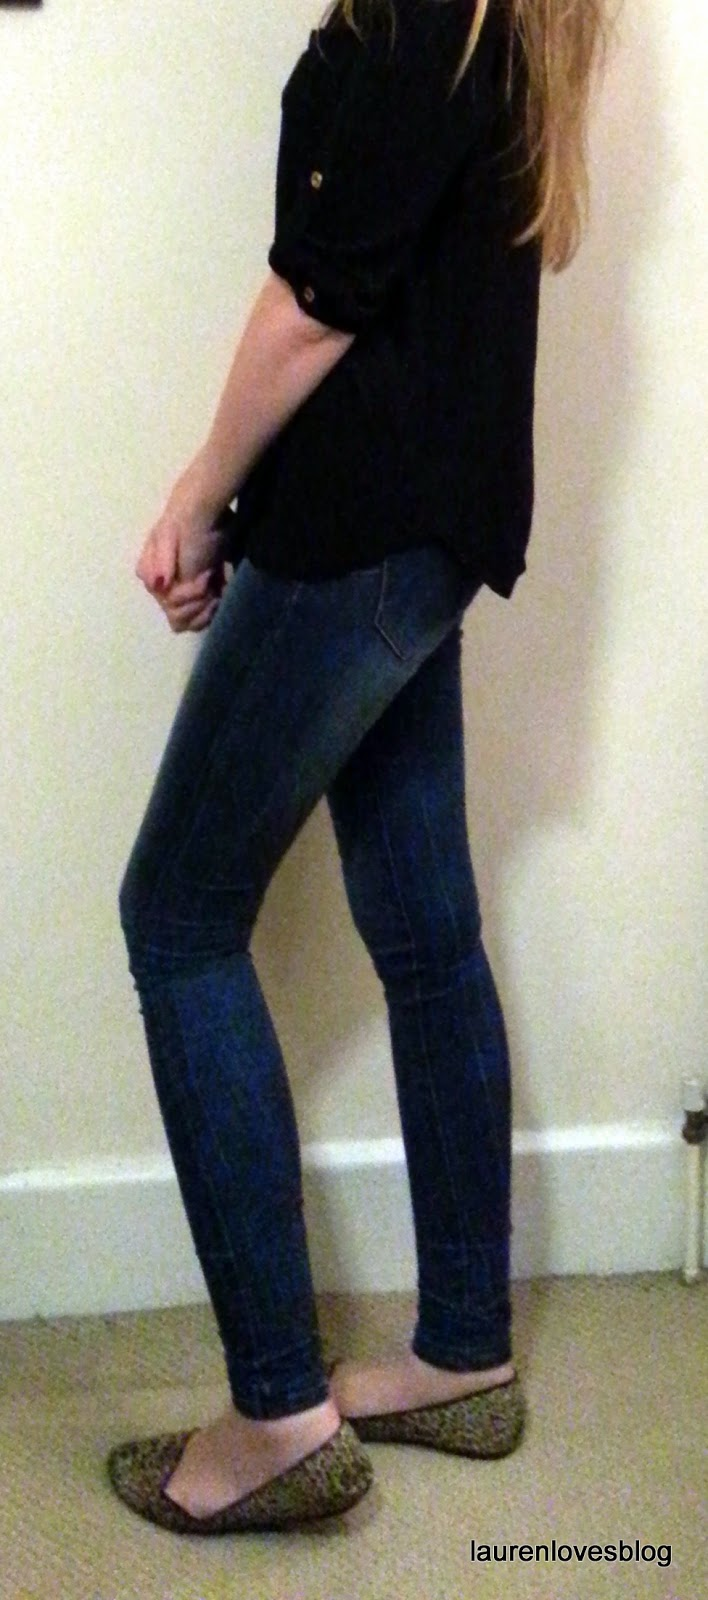 943b07939cde5 I tried out the 34inch mid blue super skinny shapers jeans - a bargain at  £22.99. As you can see they are super-tight and really suck you in  but  they have ...